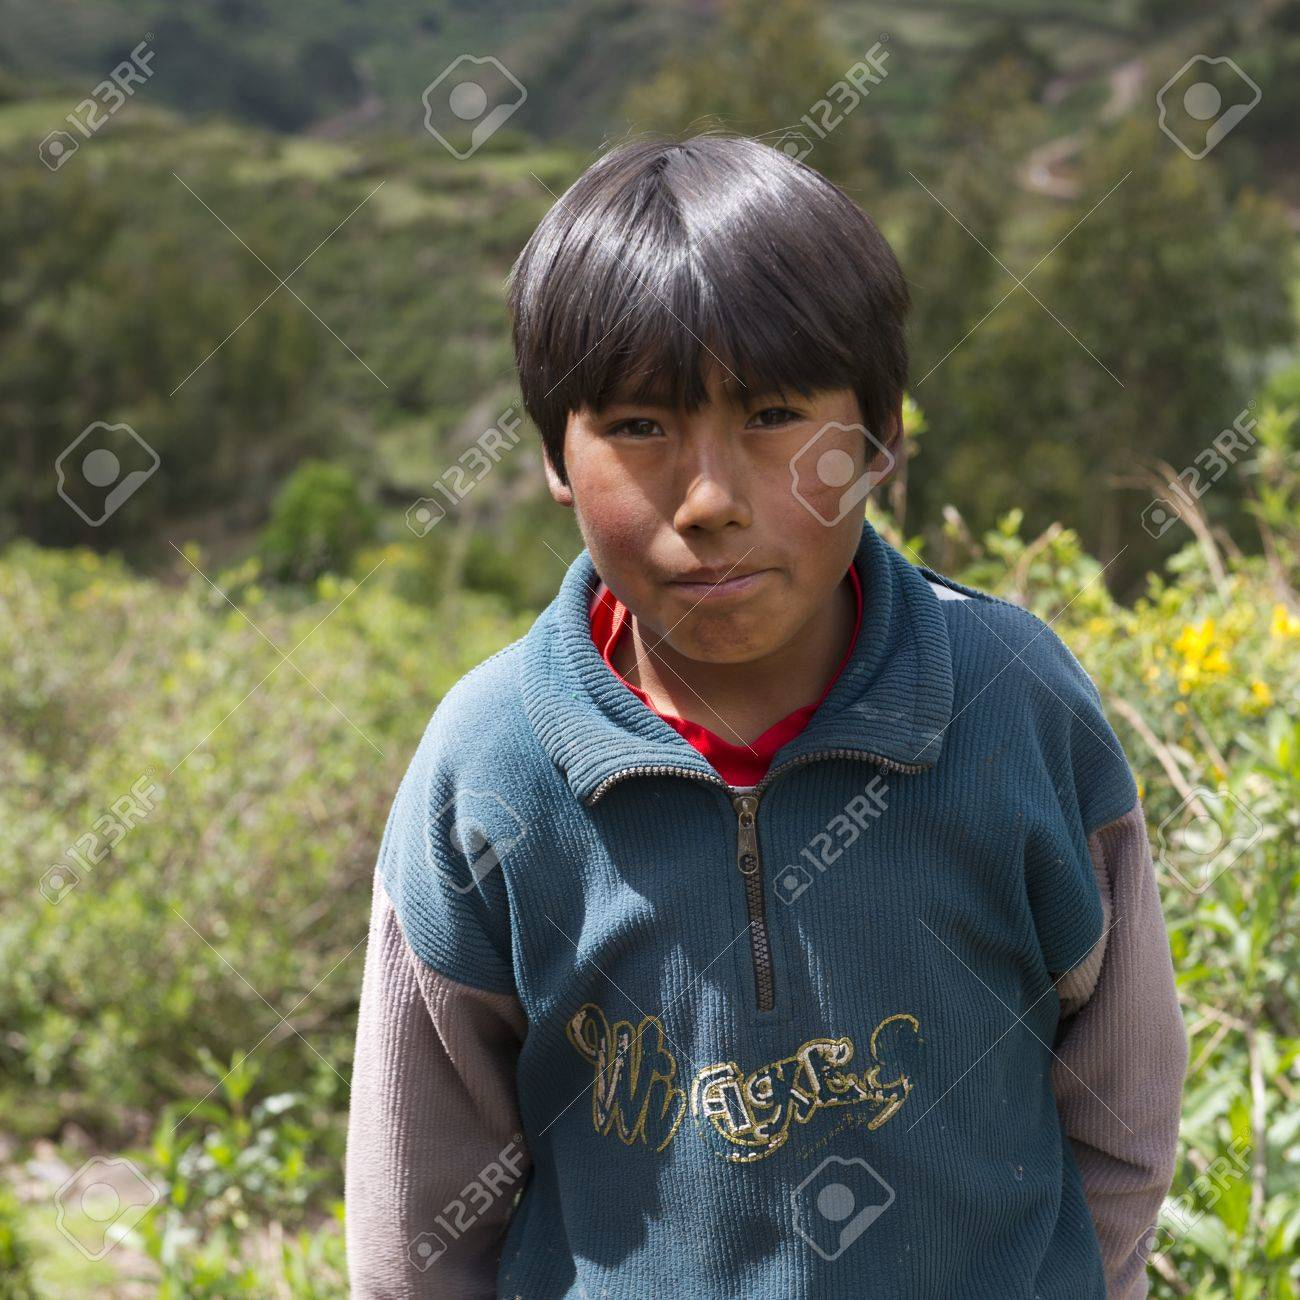 Portrait of a Quechua Indian boy at Chumpepoke Primary School, Poques, Sacred Valley, Cusco Region, Peru Stock Photo - 17227810